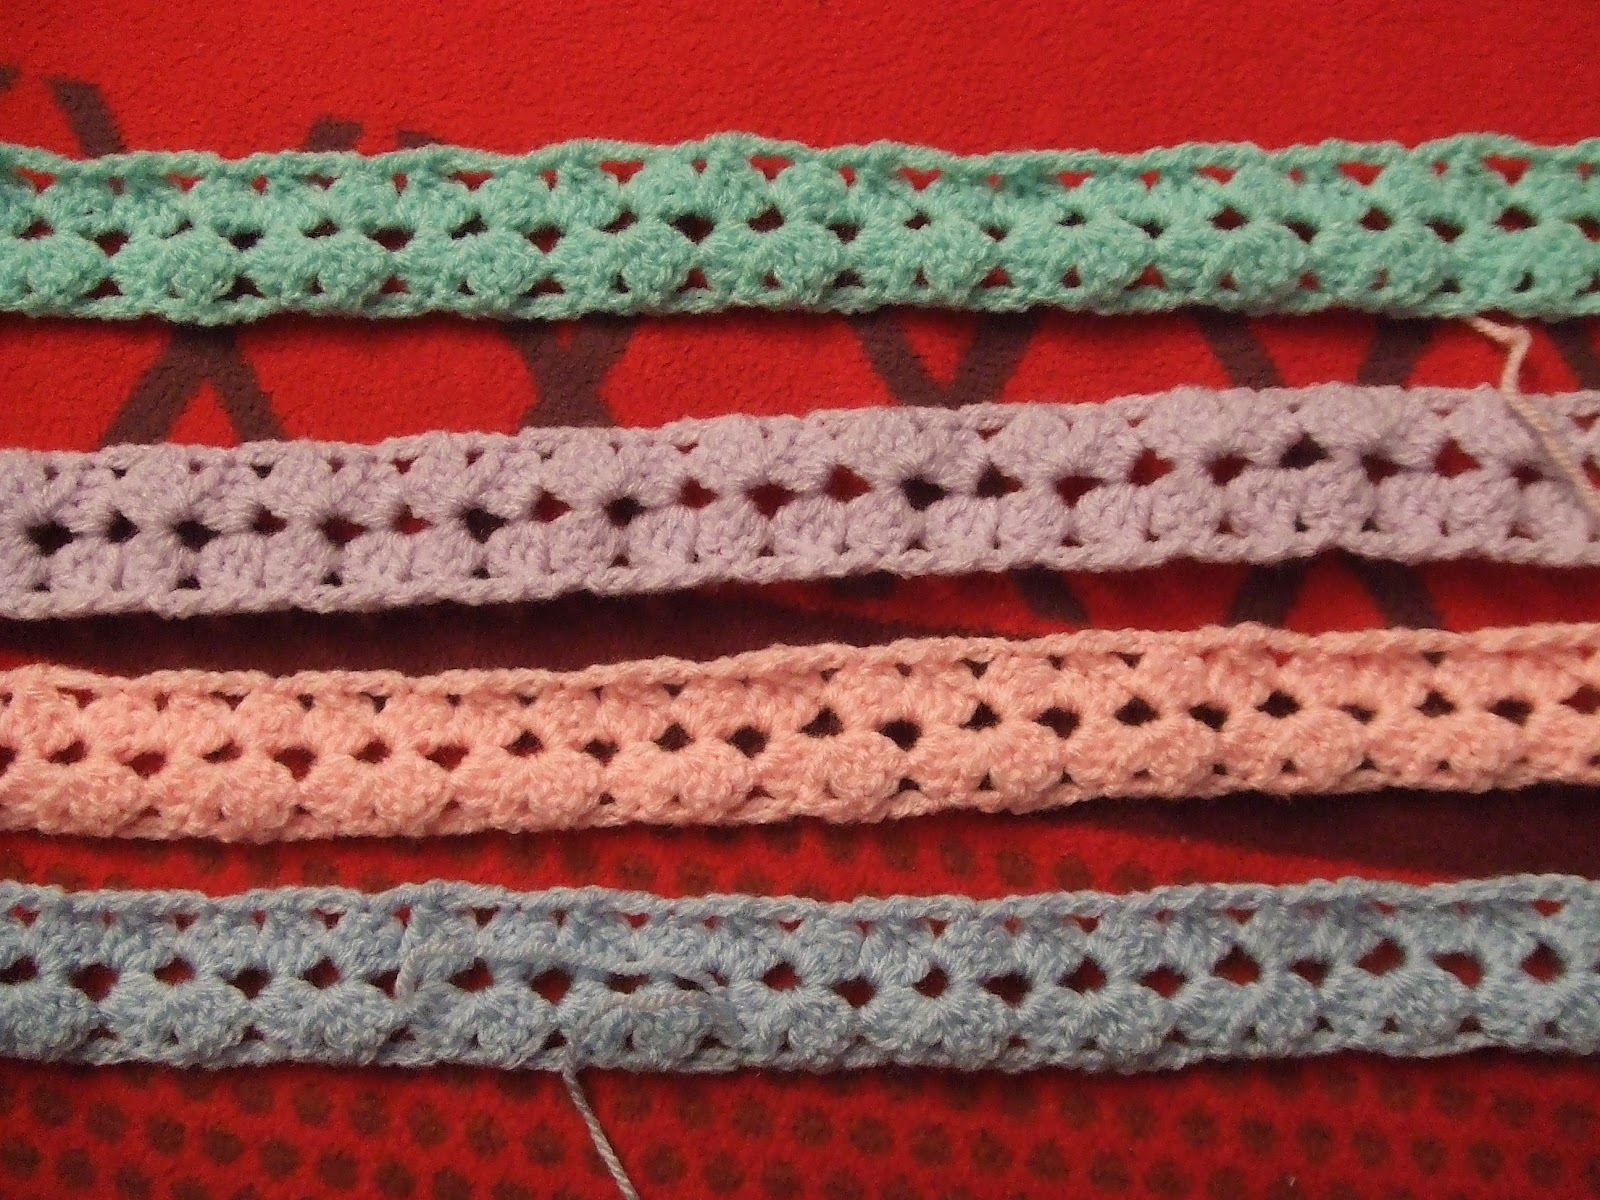 My world of crochet: Mile-a-minute: Pattern